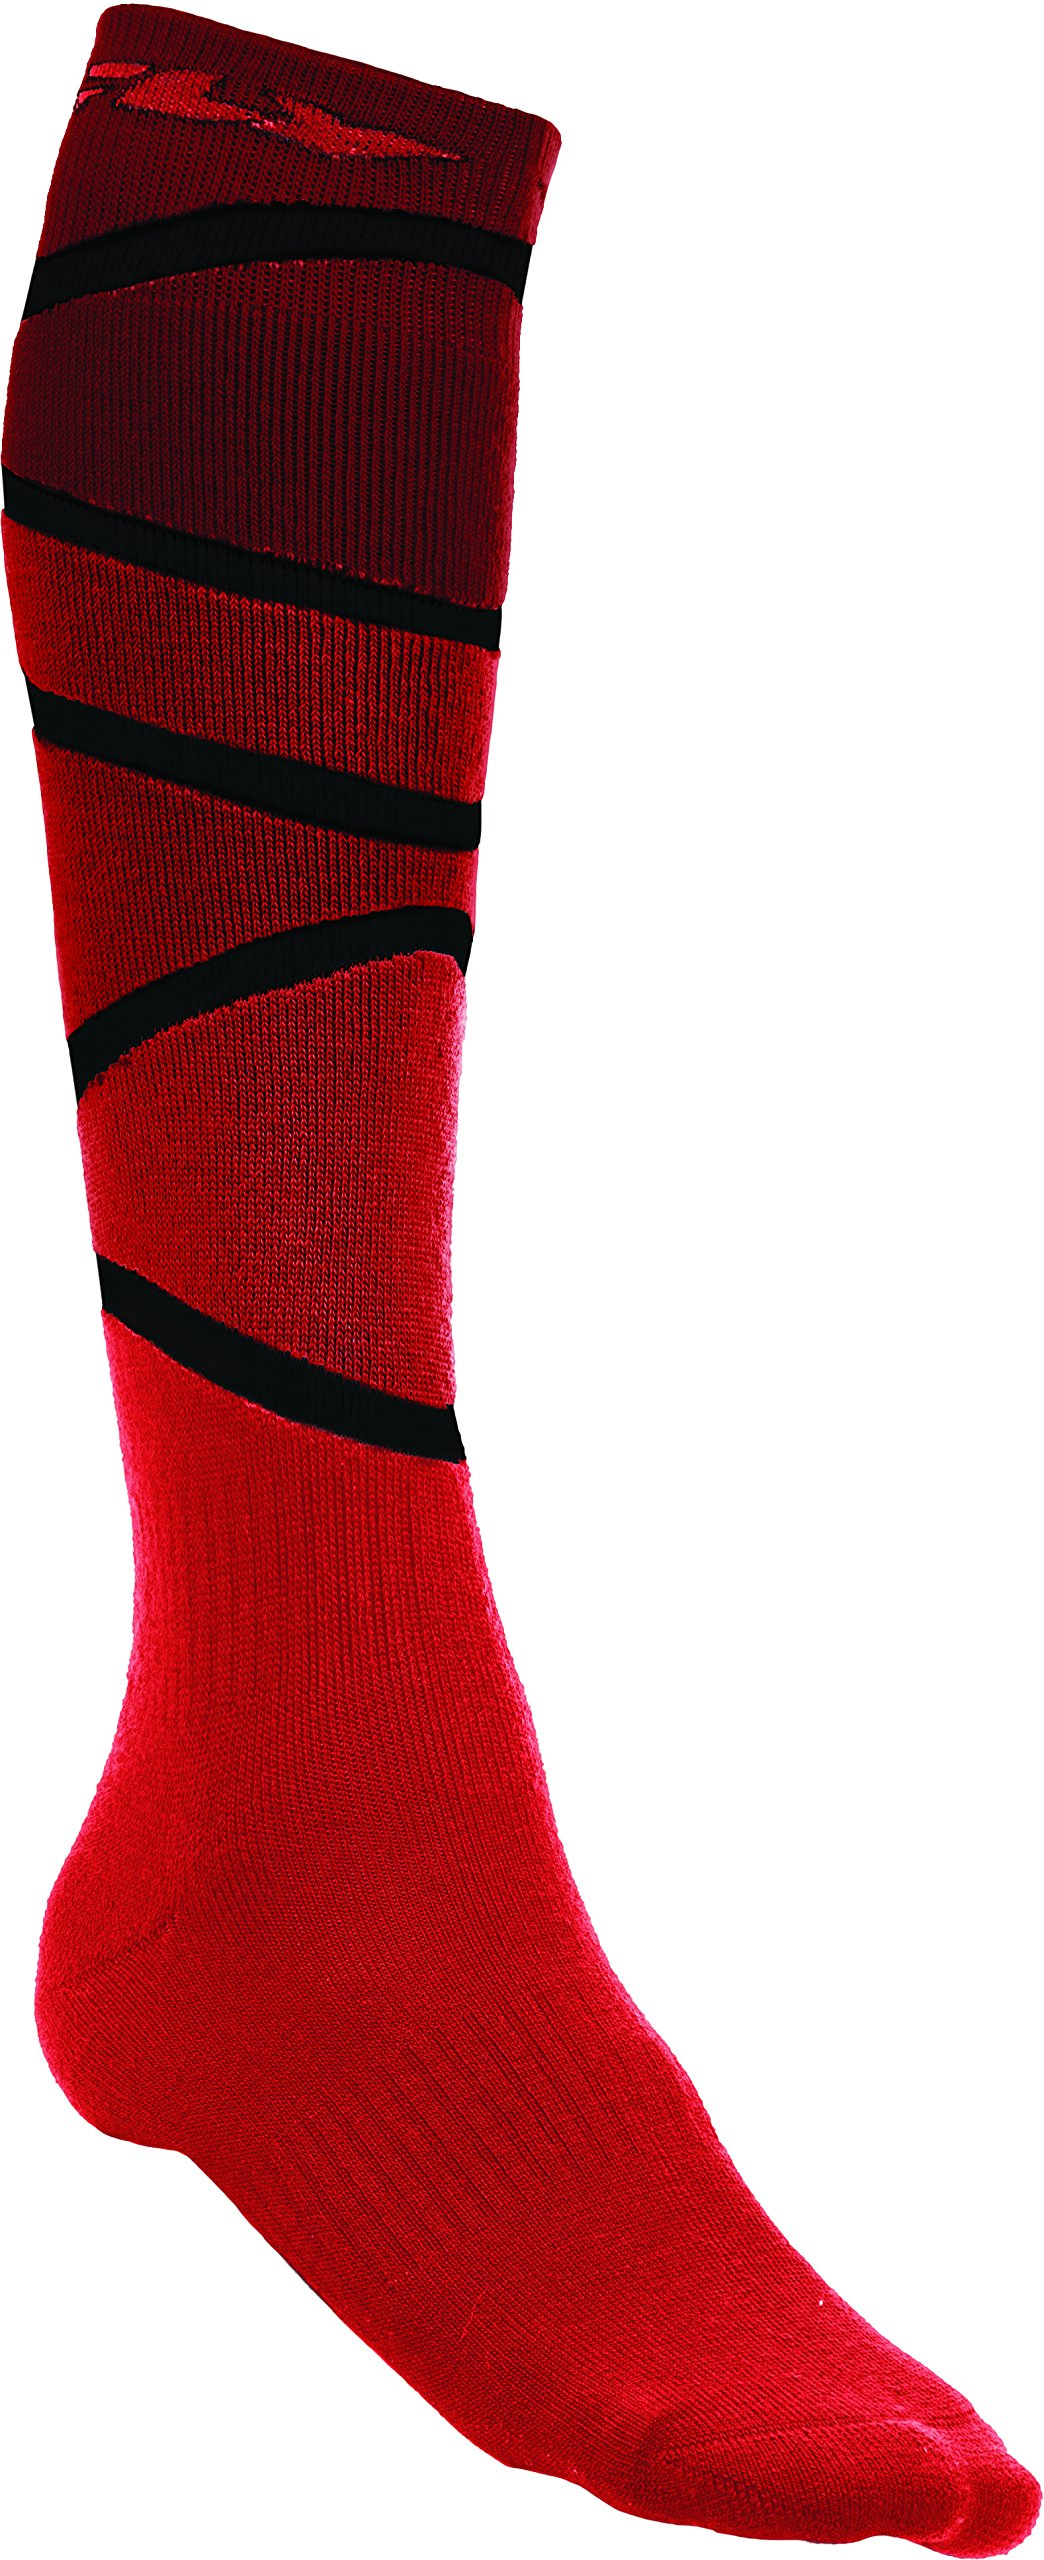 Fly Racing Unisex-Adult Mix Socks Thick (Red/Black, Large/X-Large)